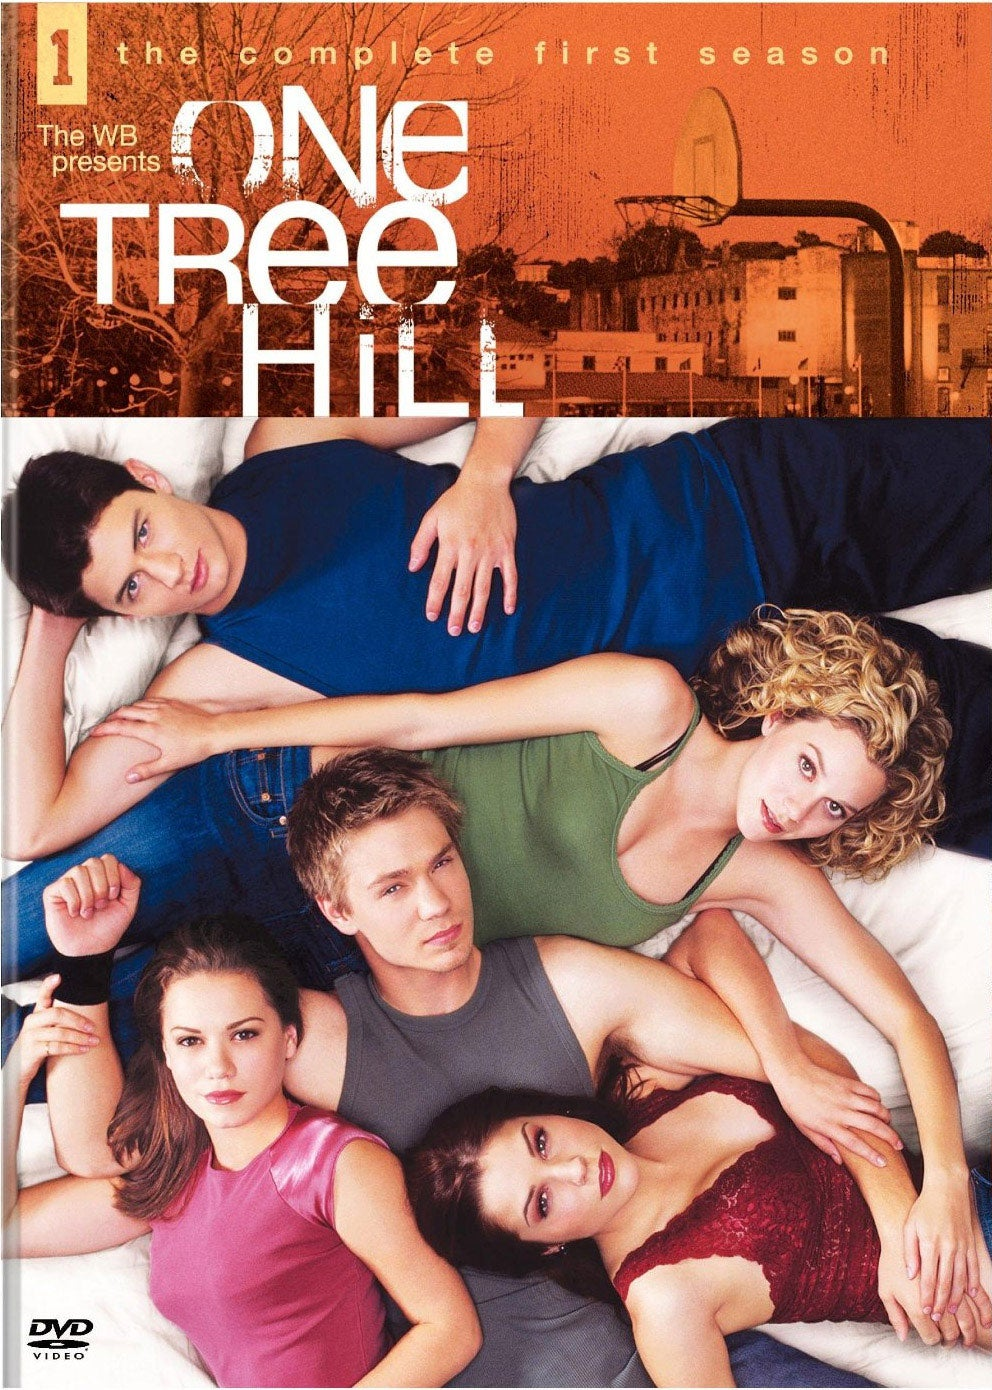 One Tree Hill: The Complete First Season (DVD)